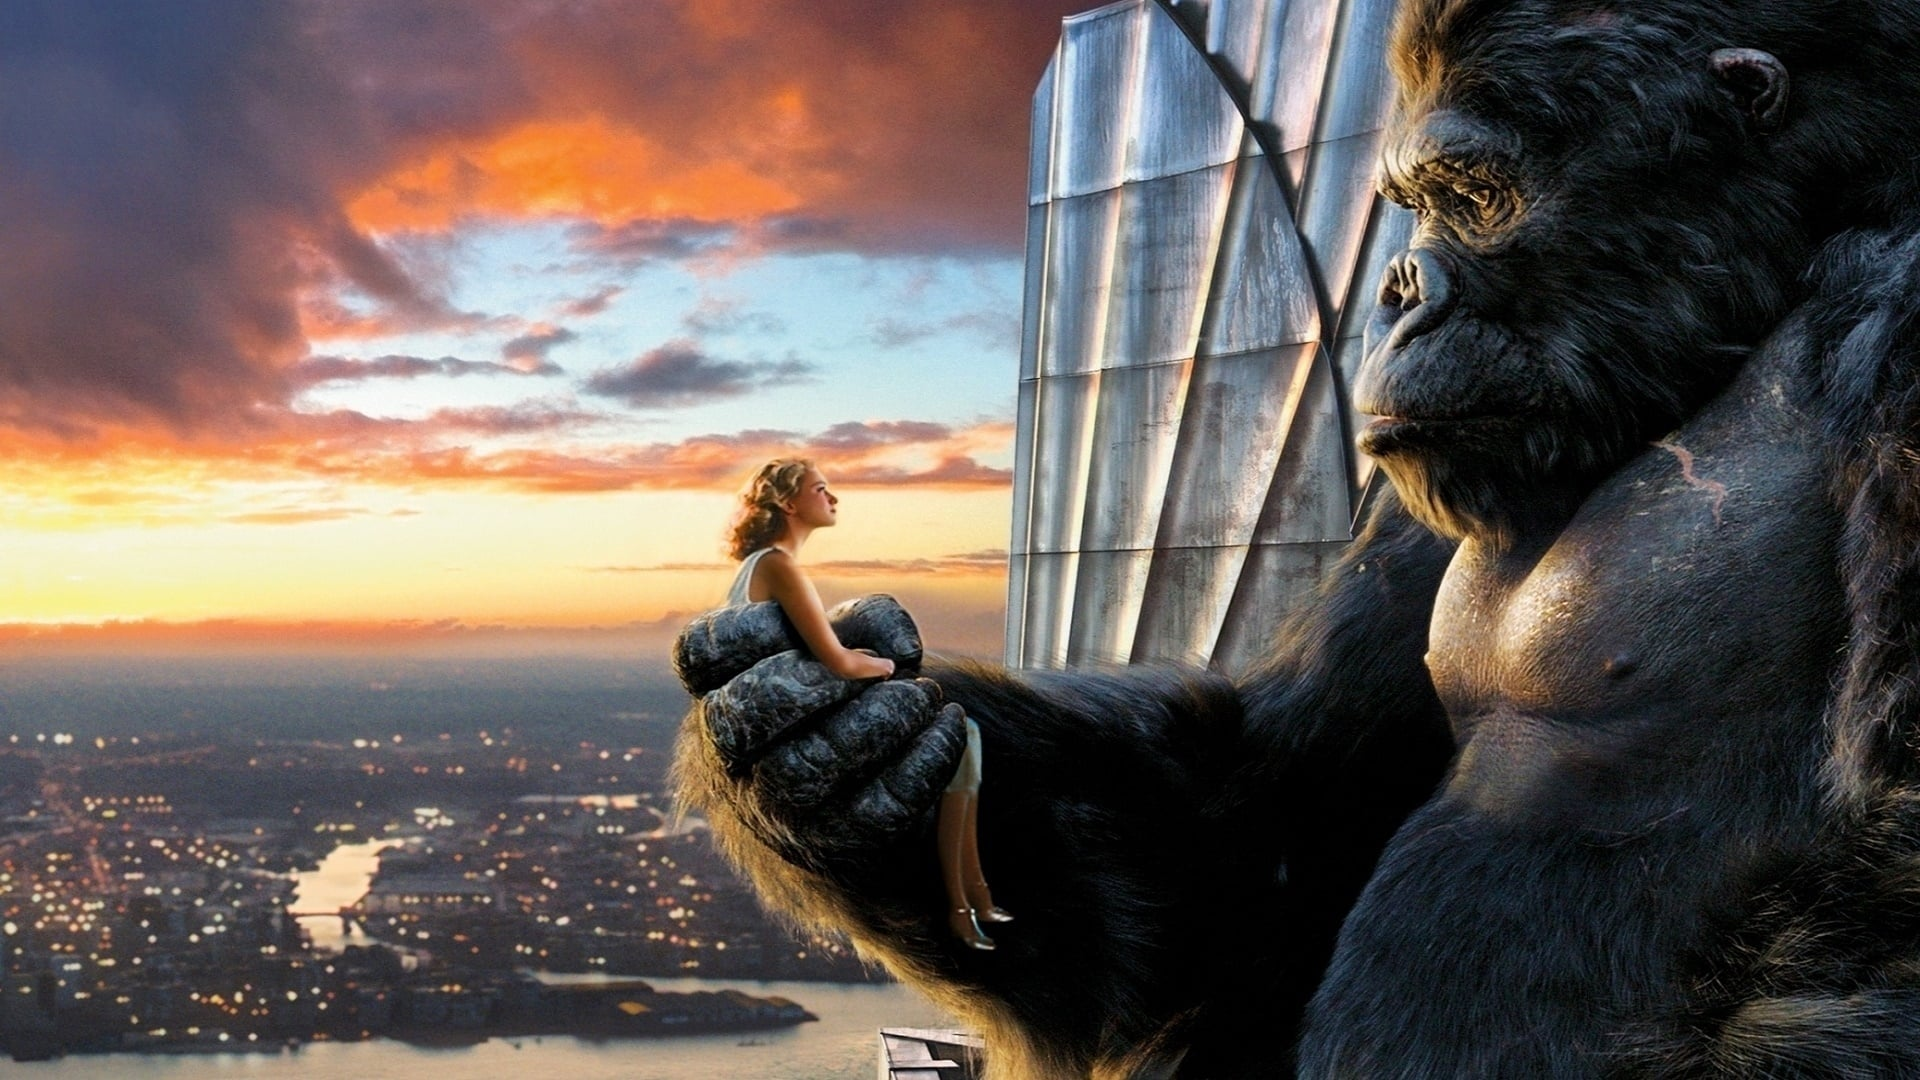 king kong 2005 full movie hindi dubbed free download